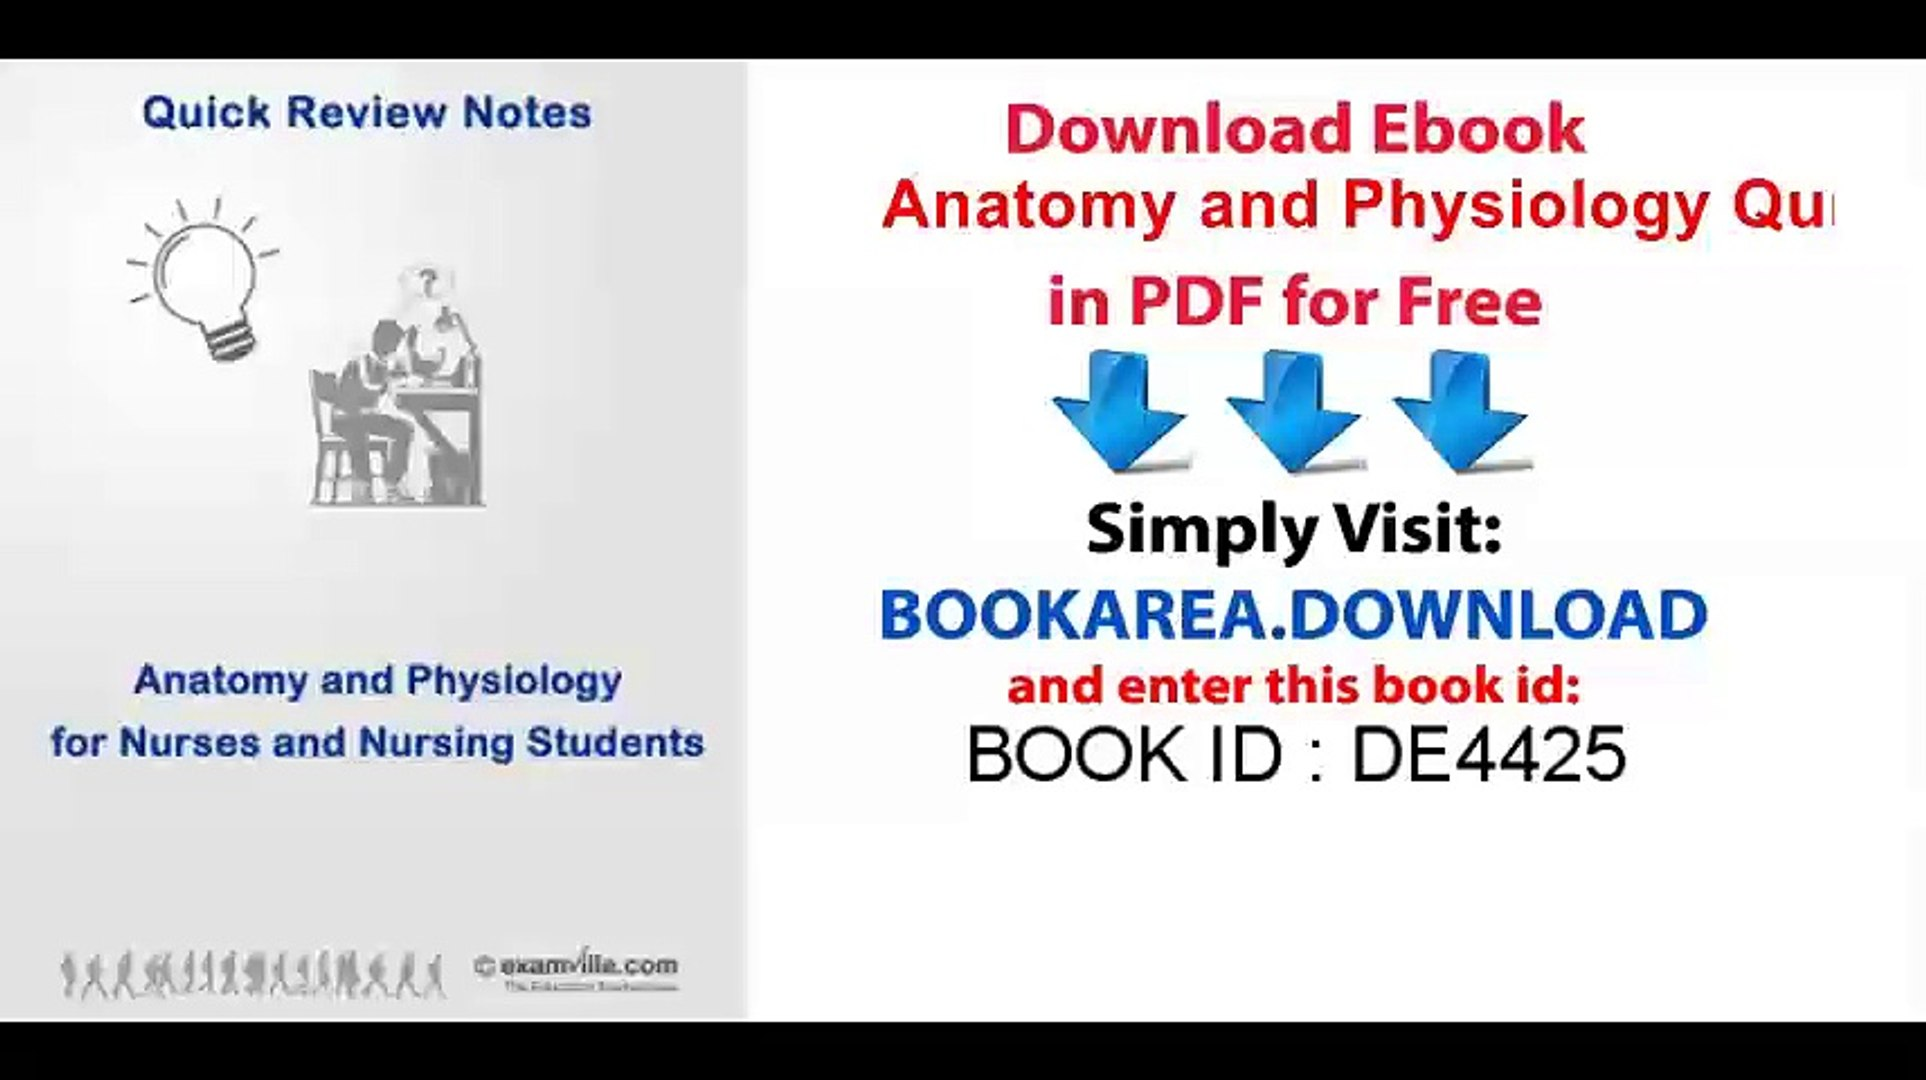 Anatomy and Physiology Quick Review for Nurses & Nursing Students (Quick  Review Notes)